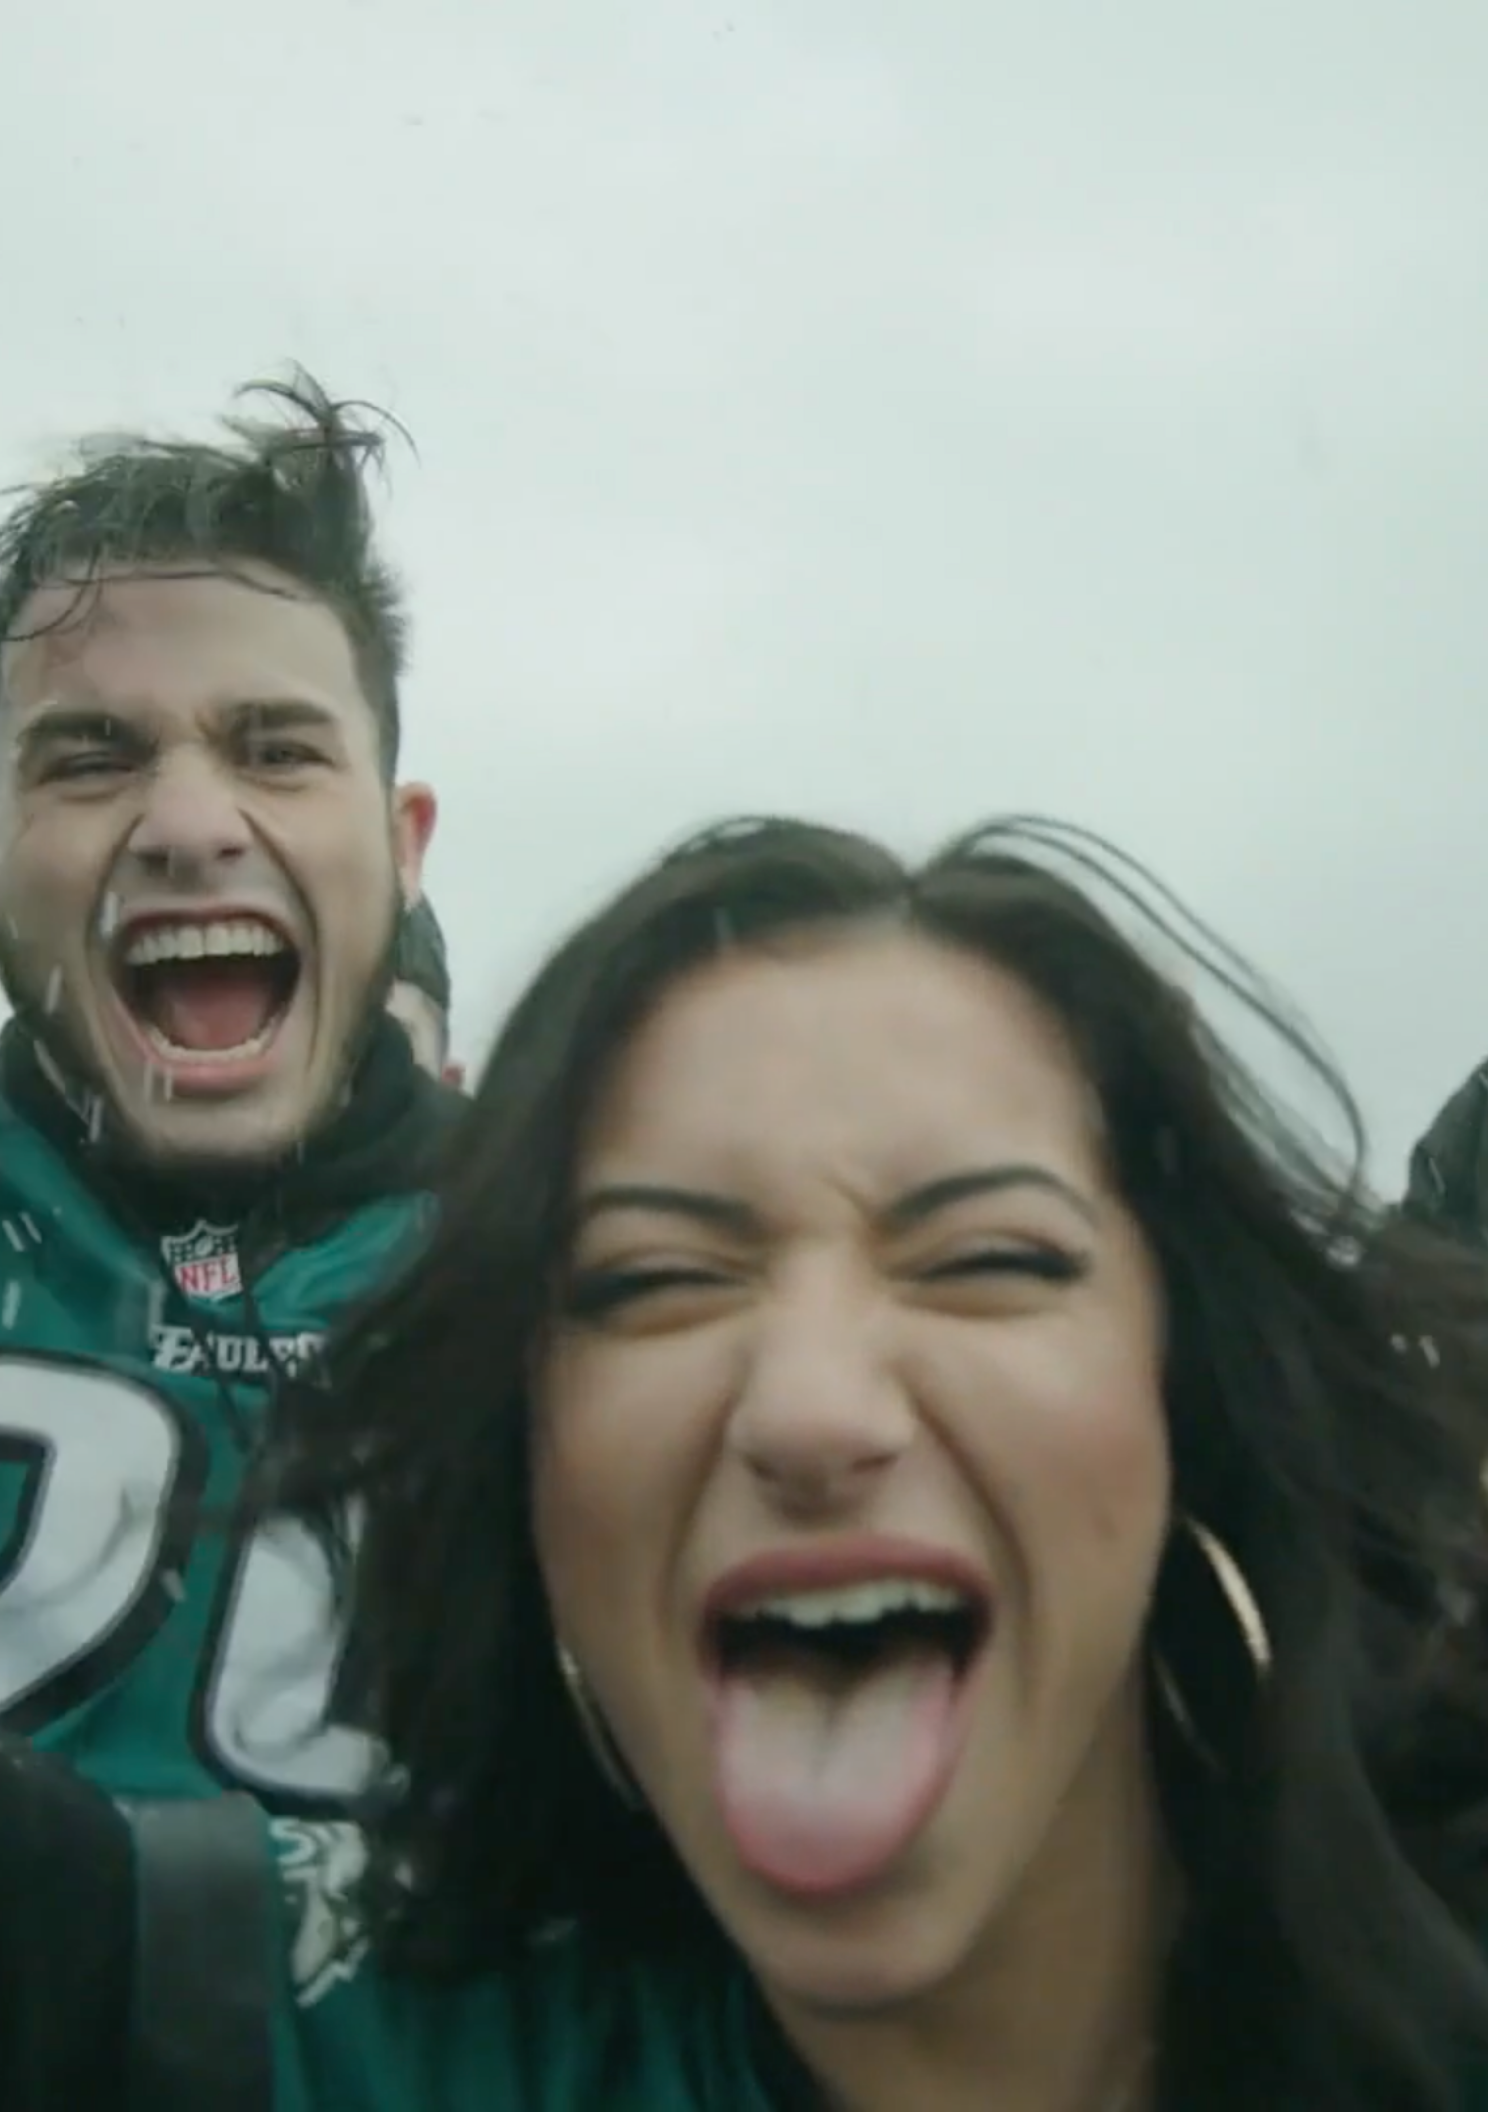 maybe next year - OVERVIEW: Every sports nut knows there's something a little off about Eagles fans. And every Eagles fan - after decades of crushing heartbreak - has accepted the grim reality of, well, maybe next year… The feature documentary spotlights those Philadelphians who put the 'fan' in fanatical all while following the team's wildly unpredictable 2017 season and Super Bowl run.FILMMAKERS: Directed by Kyle ThrashCinematography by Michael FallerEdited by Matt SchaffProduced by Joe Plummer and Ian Ross